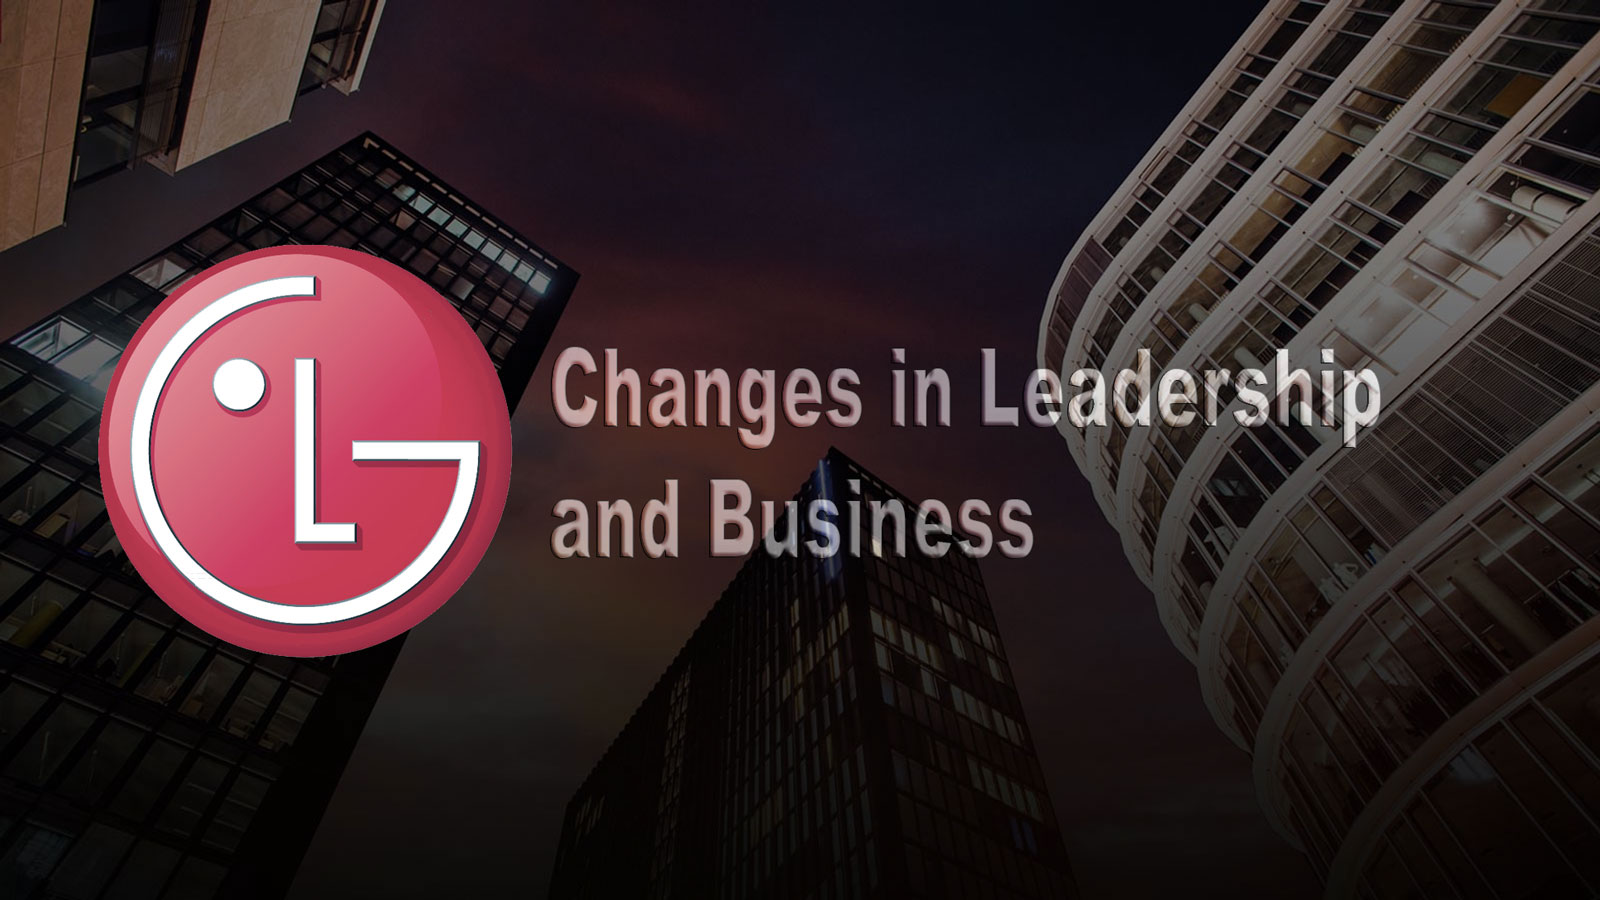 LG Electronics Announces Leadership and Business Changes to Enhance Competitiveness